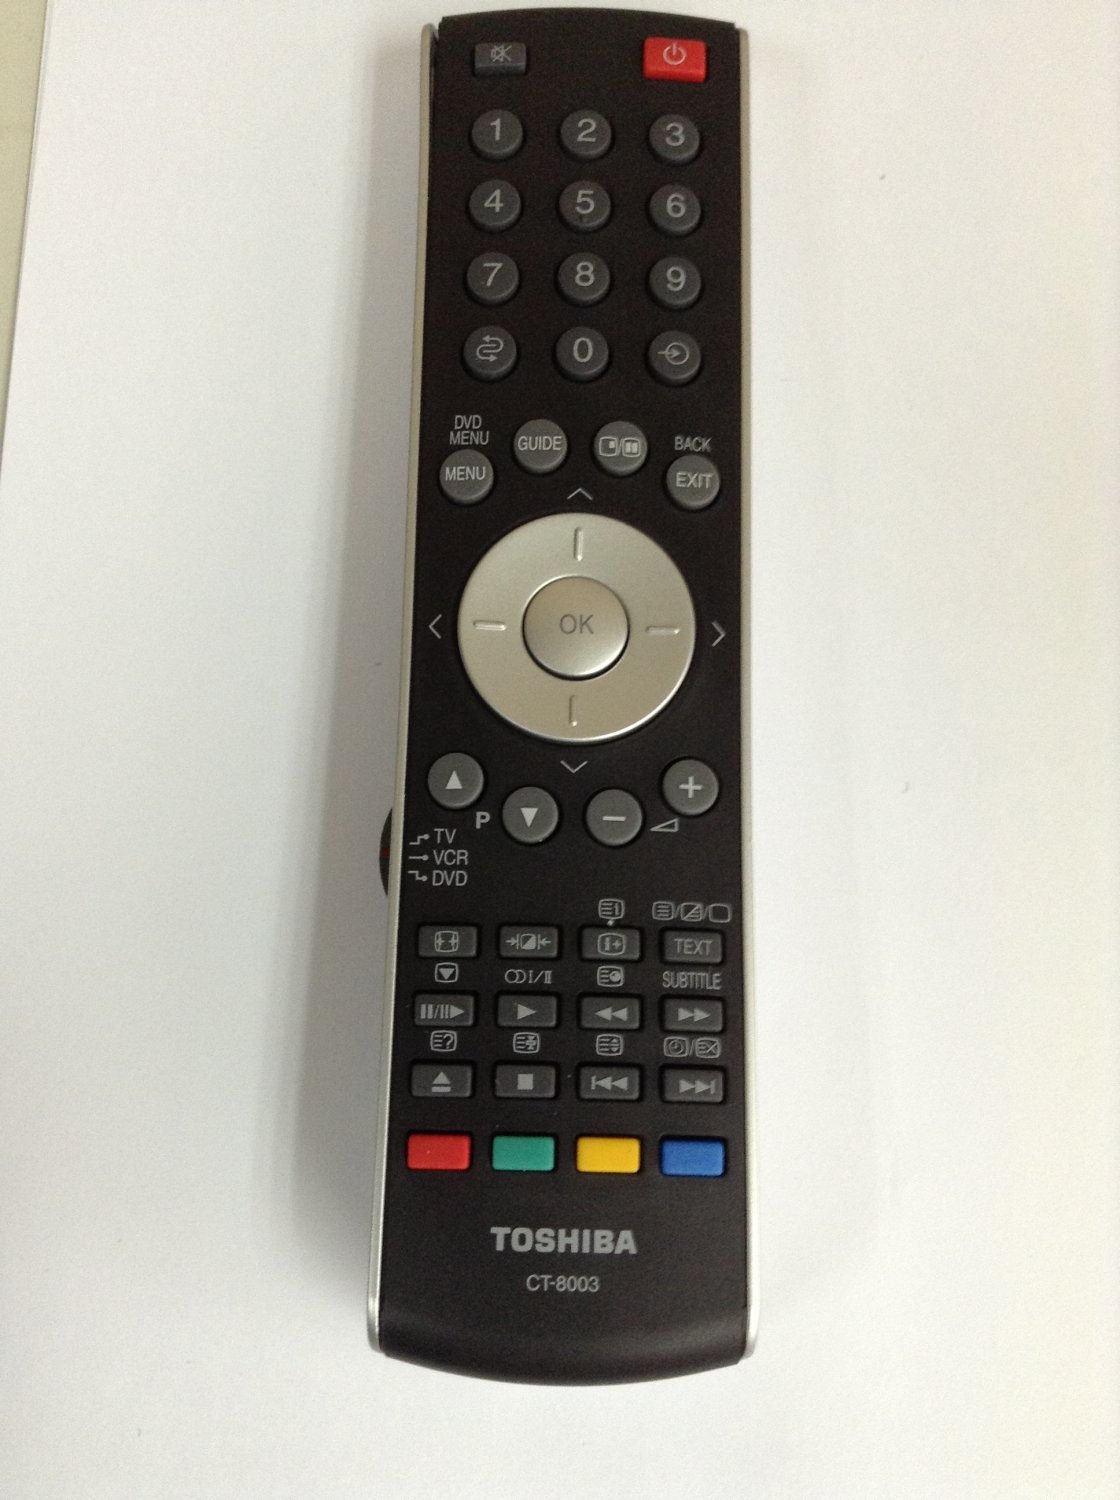 REMOTE CONTROL FOR TOSHIBA TV CT-859 13A24 13A25 13A26 19A24 19A25 19A26